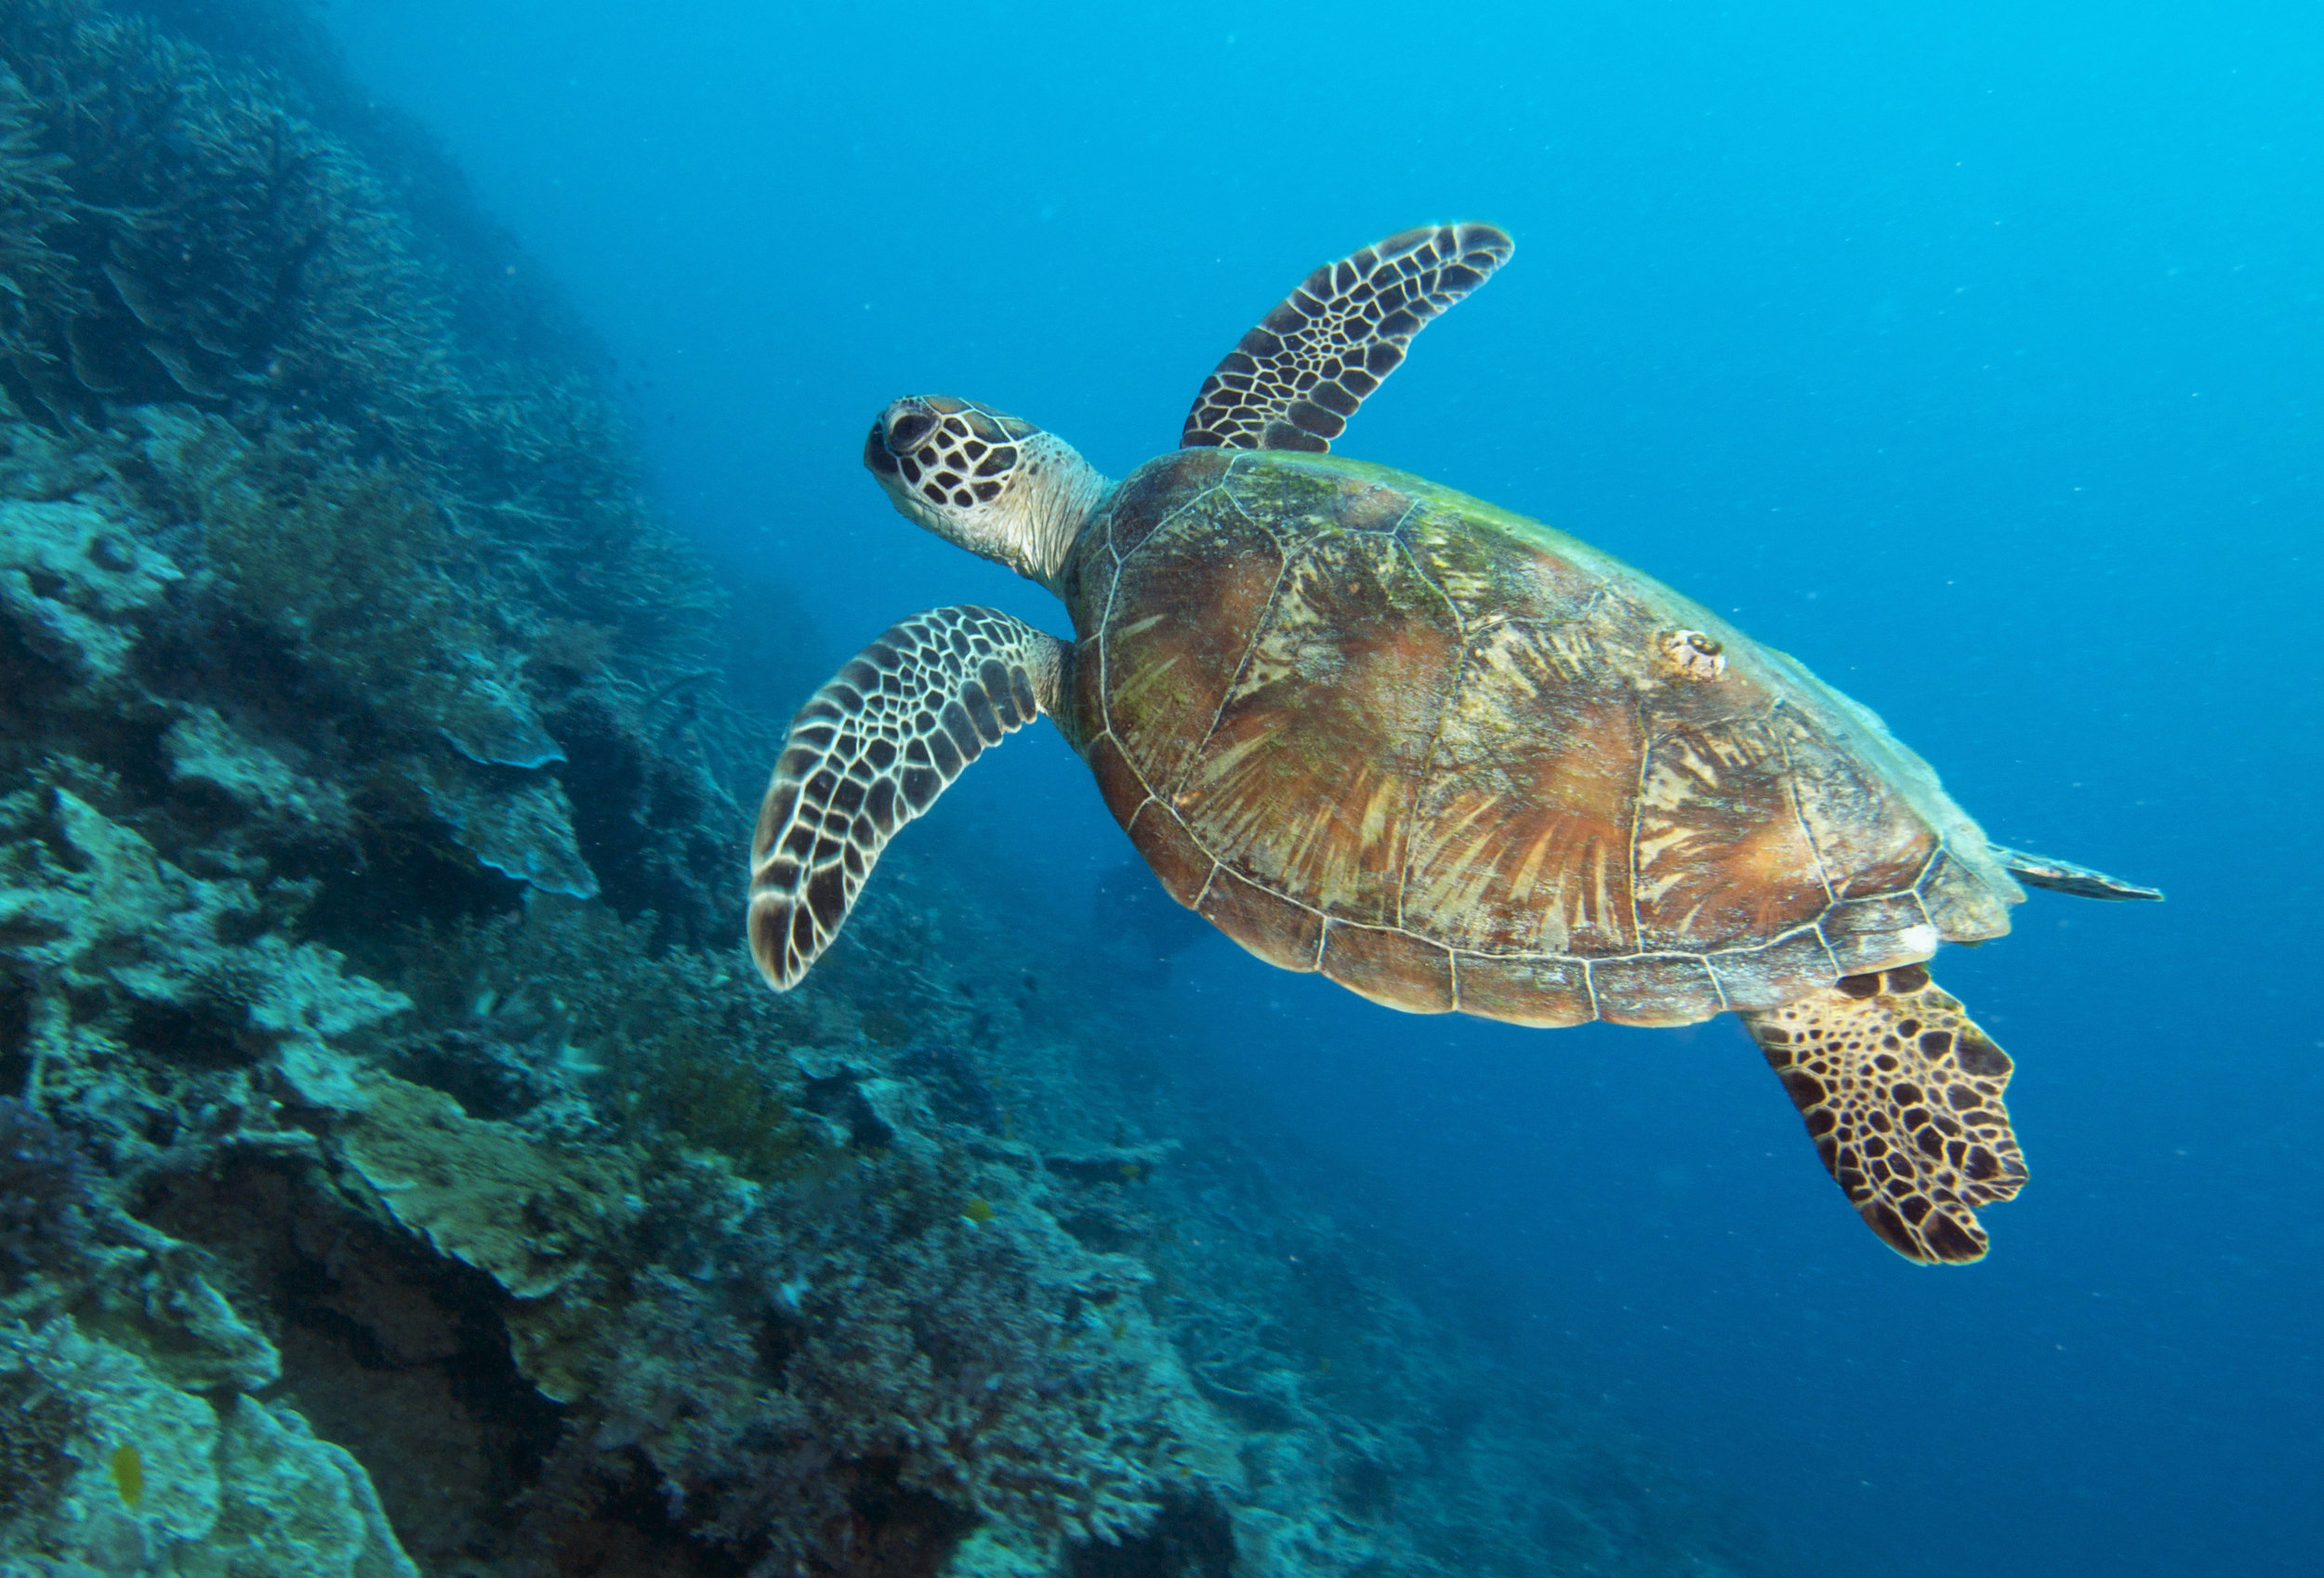 SEA TURTLE CREDIT: THE OCEAN AGENCY / coral reef image bank